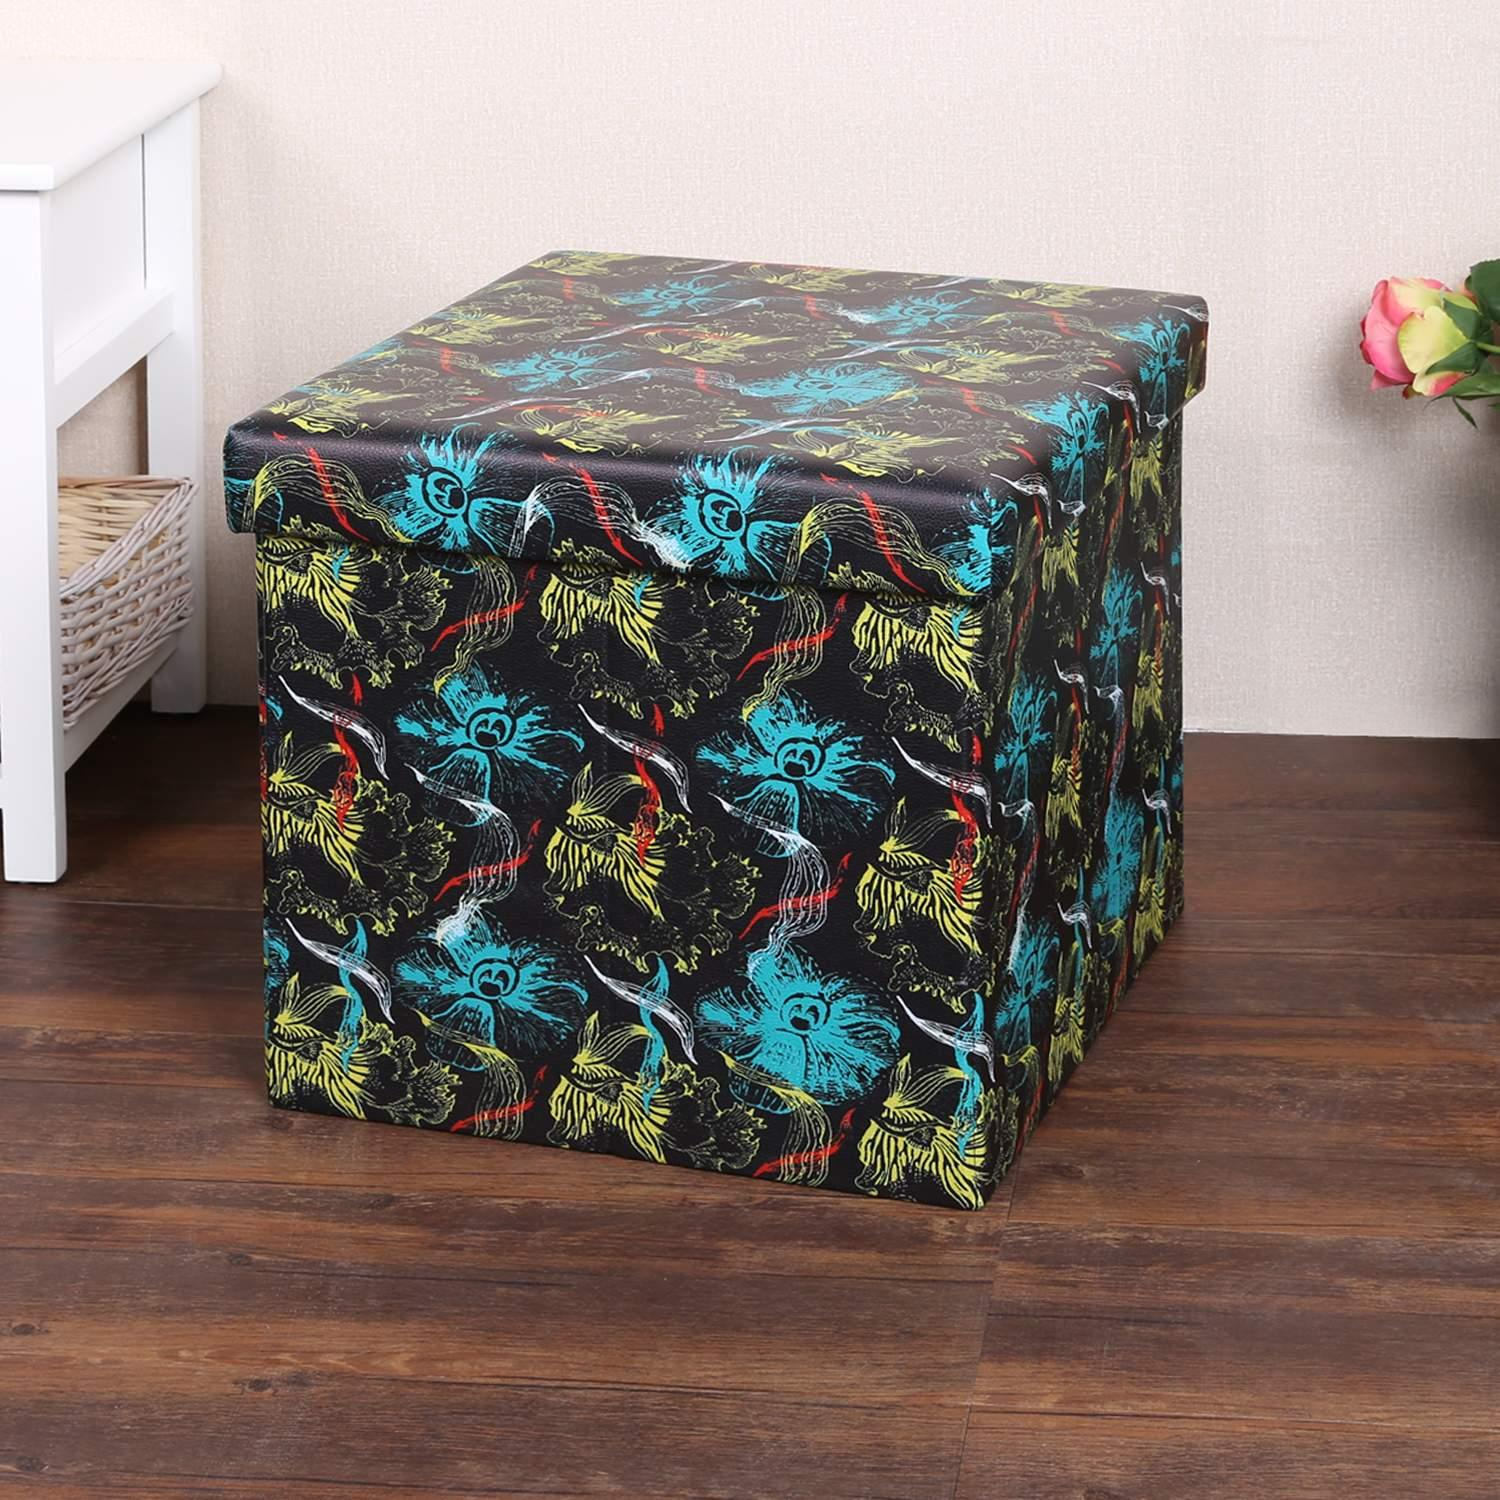 Collapsible Storage Ottoman Cube Foot Rest Stool Seat ,Water-proof PVC Leather, 37 x 37 x 37 cm